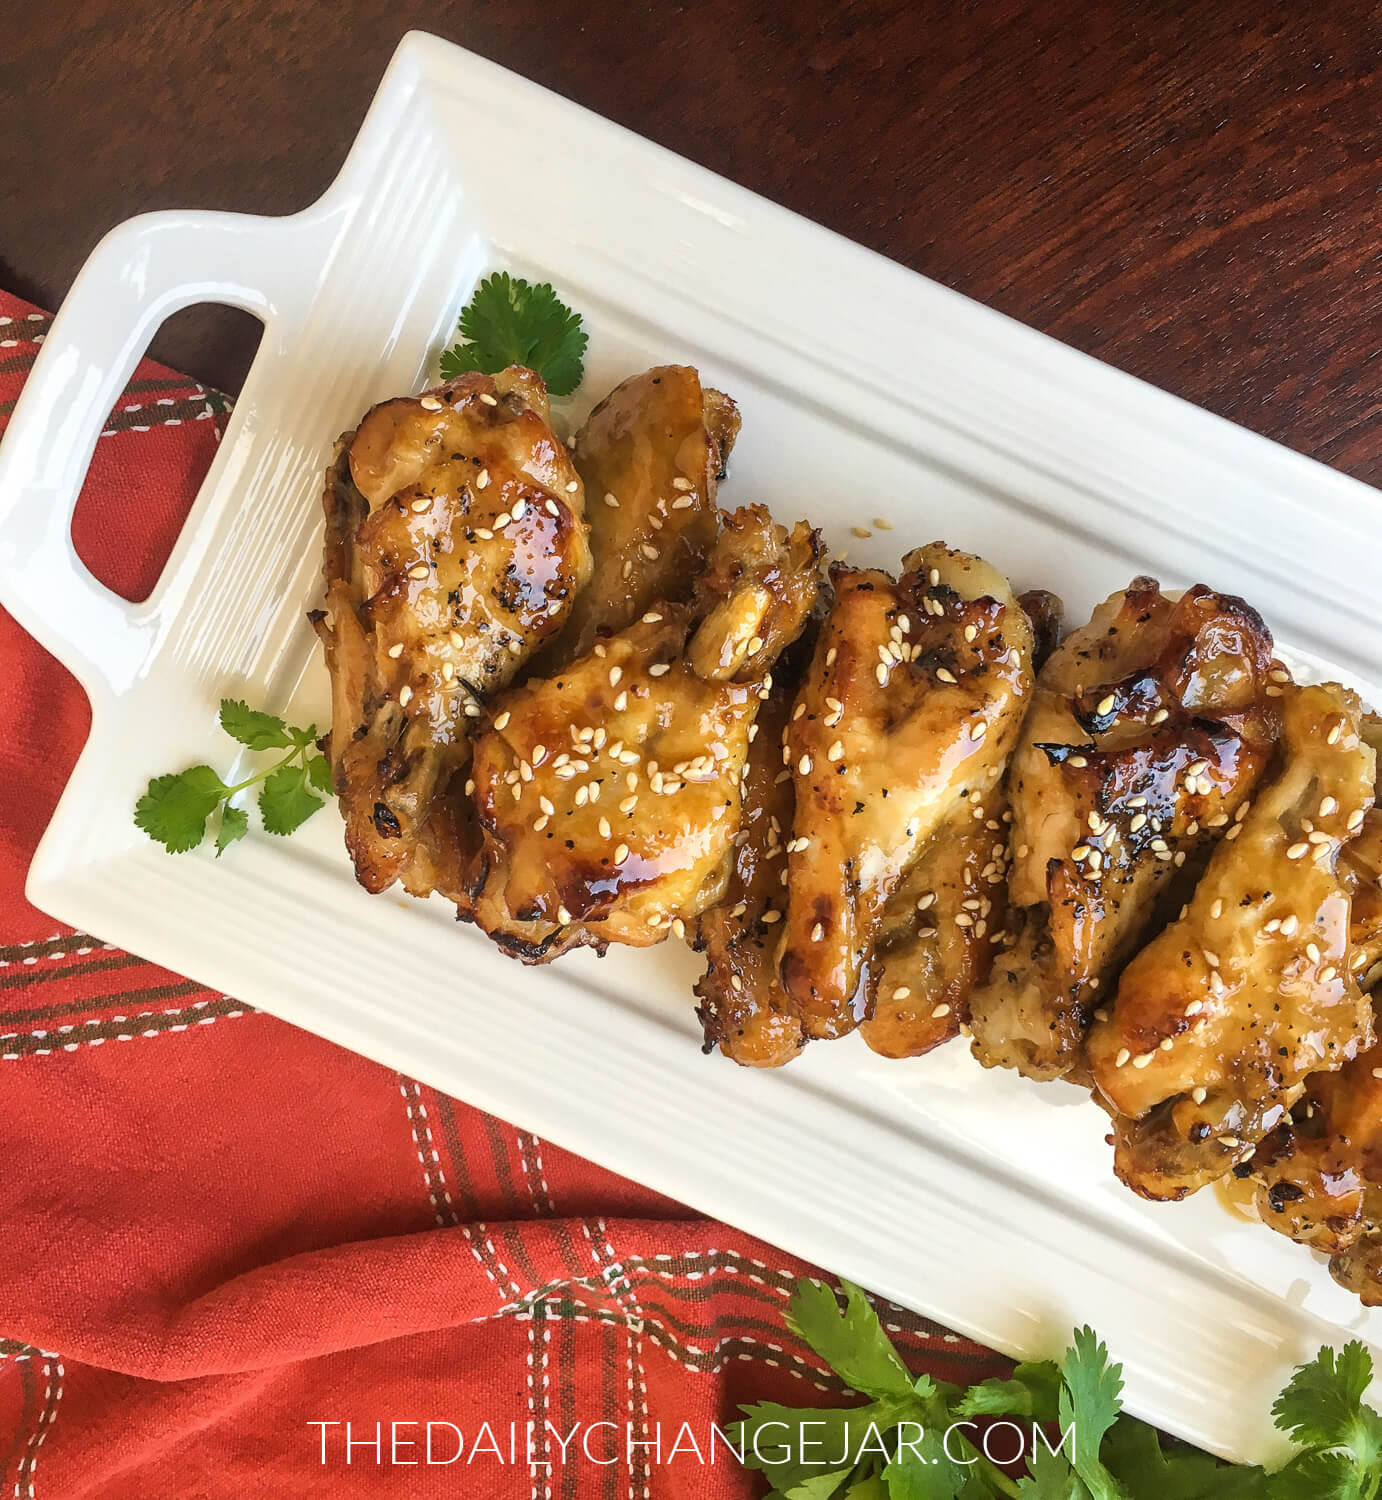 These wings have an Asian flair and are sticky, saucy, sweet, and tangy. The Instant Pot makes them so easy to whip up, SO flavorful, and are fall off the bone tender. #instantpot #chickewings #sesamegarlic #soysauce #coconutaminos